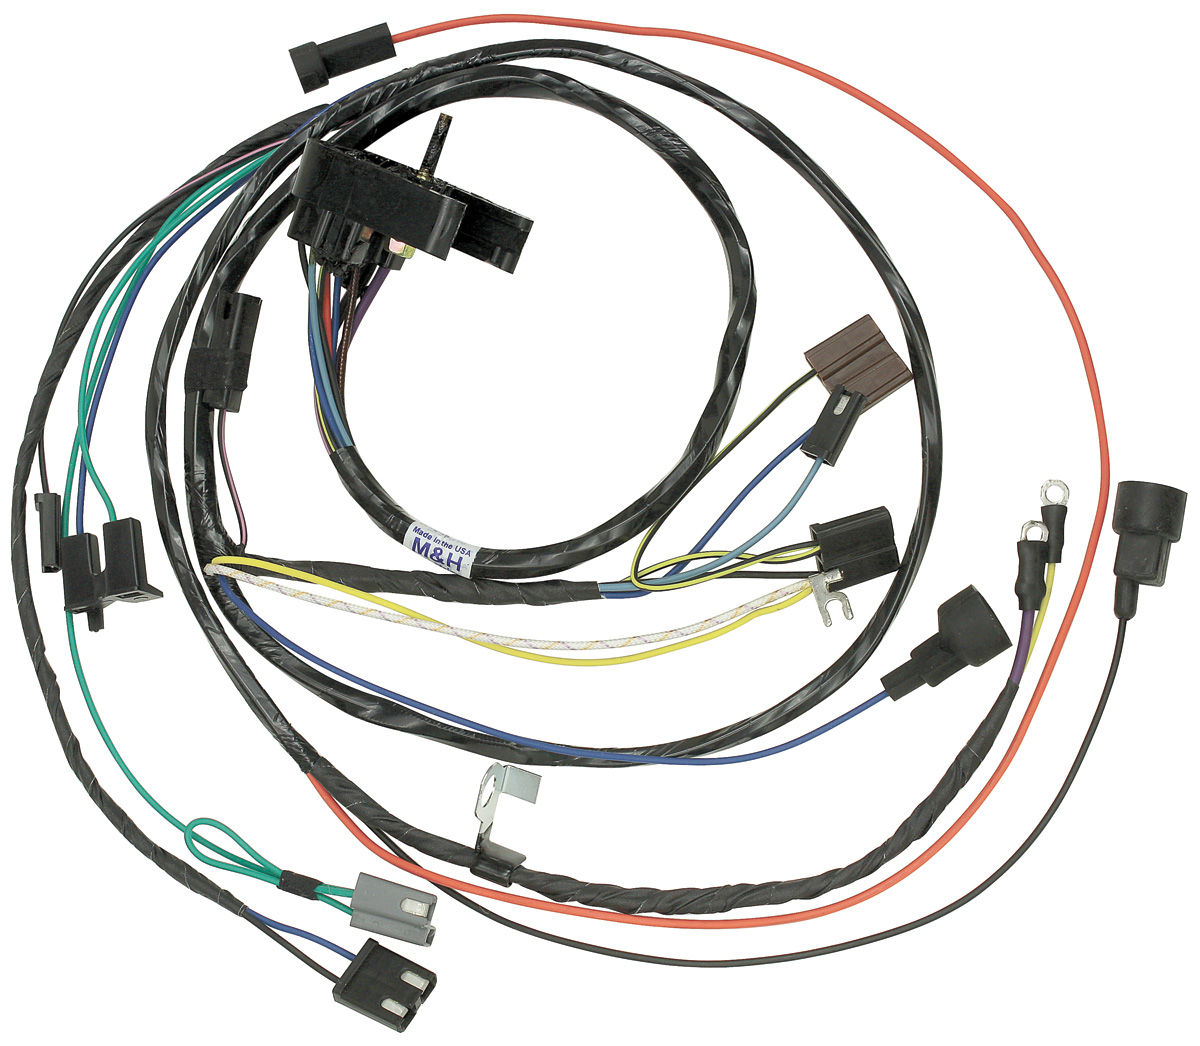 1970 chevelle engine harness v8 w auto trans click to enlarge